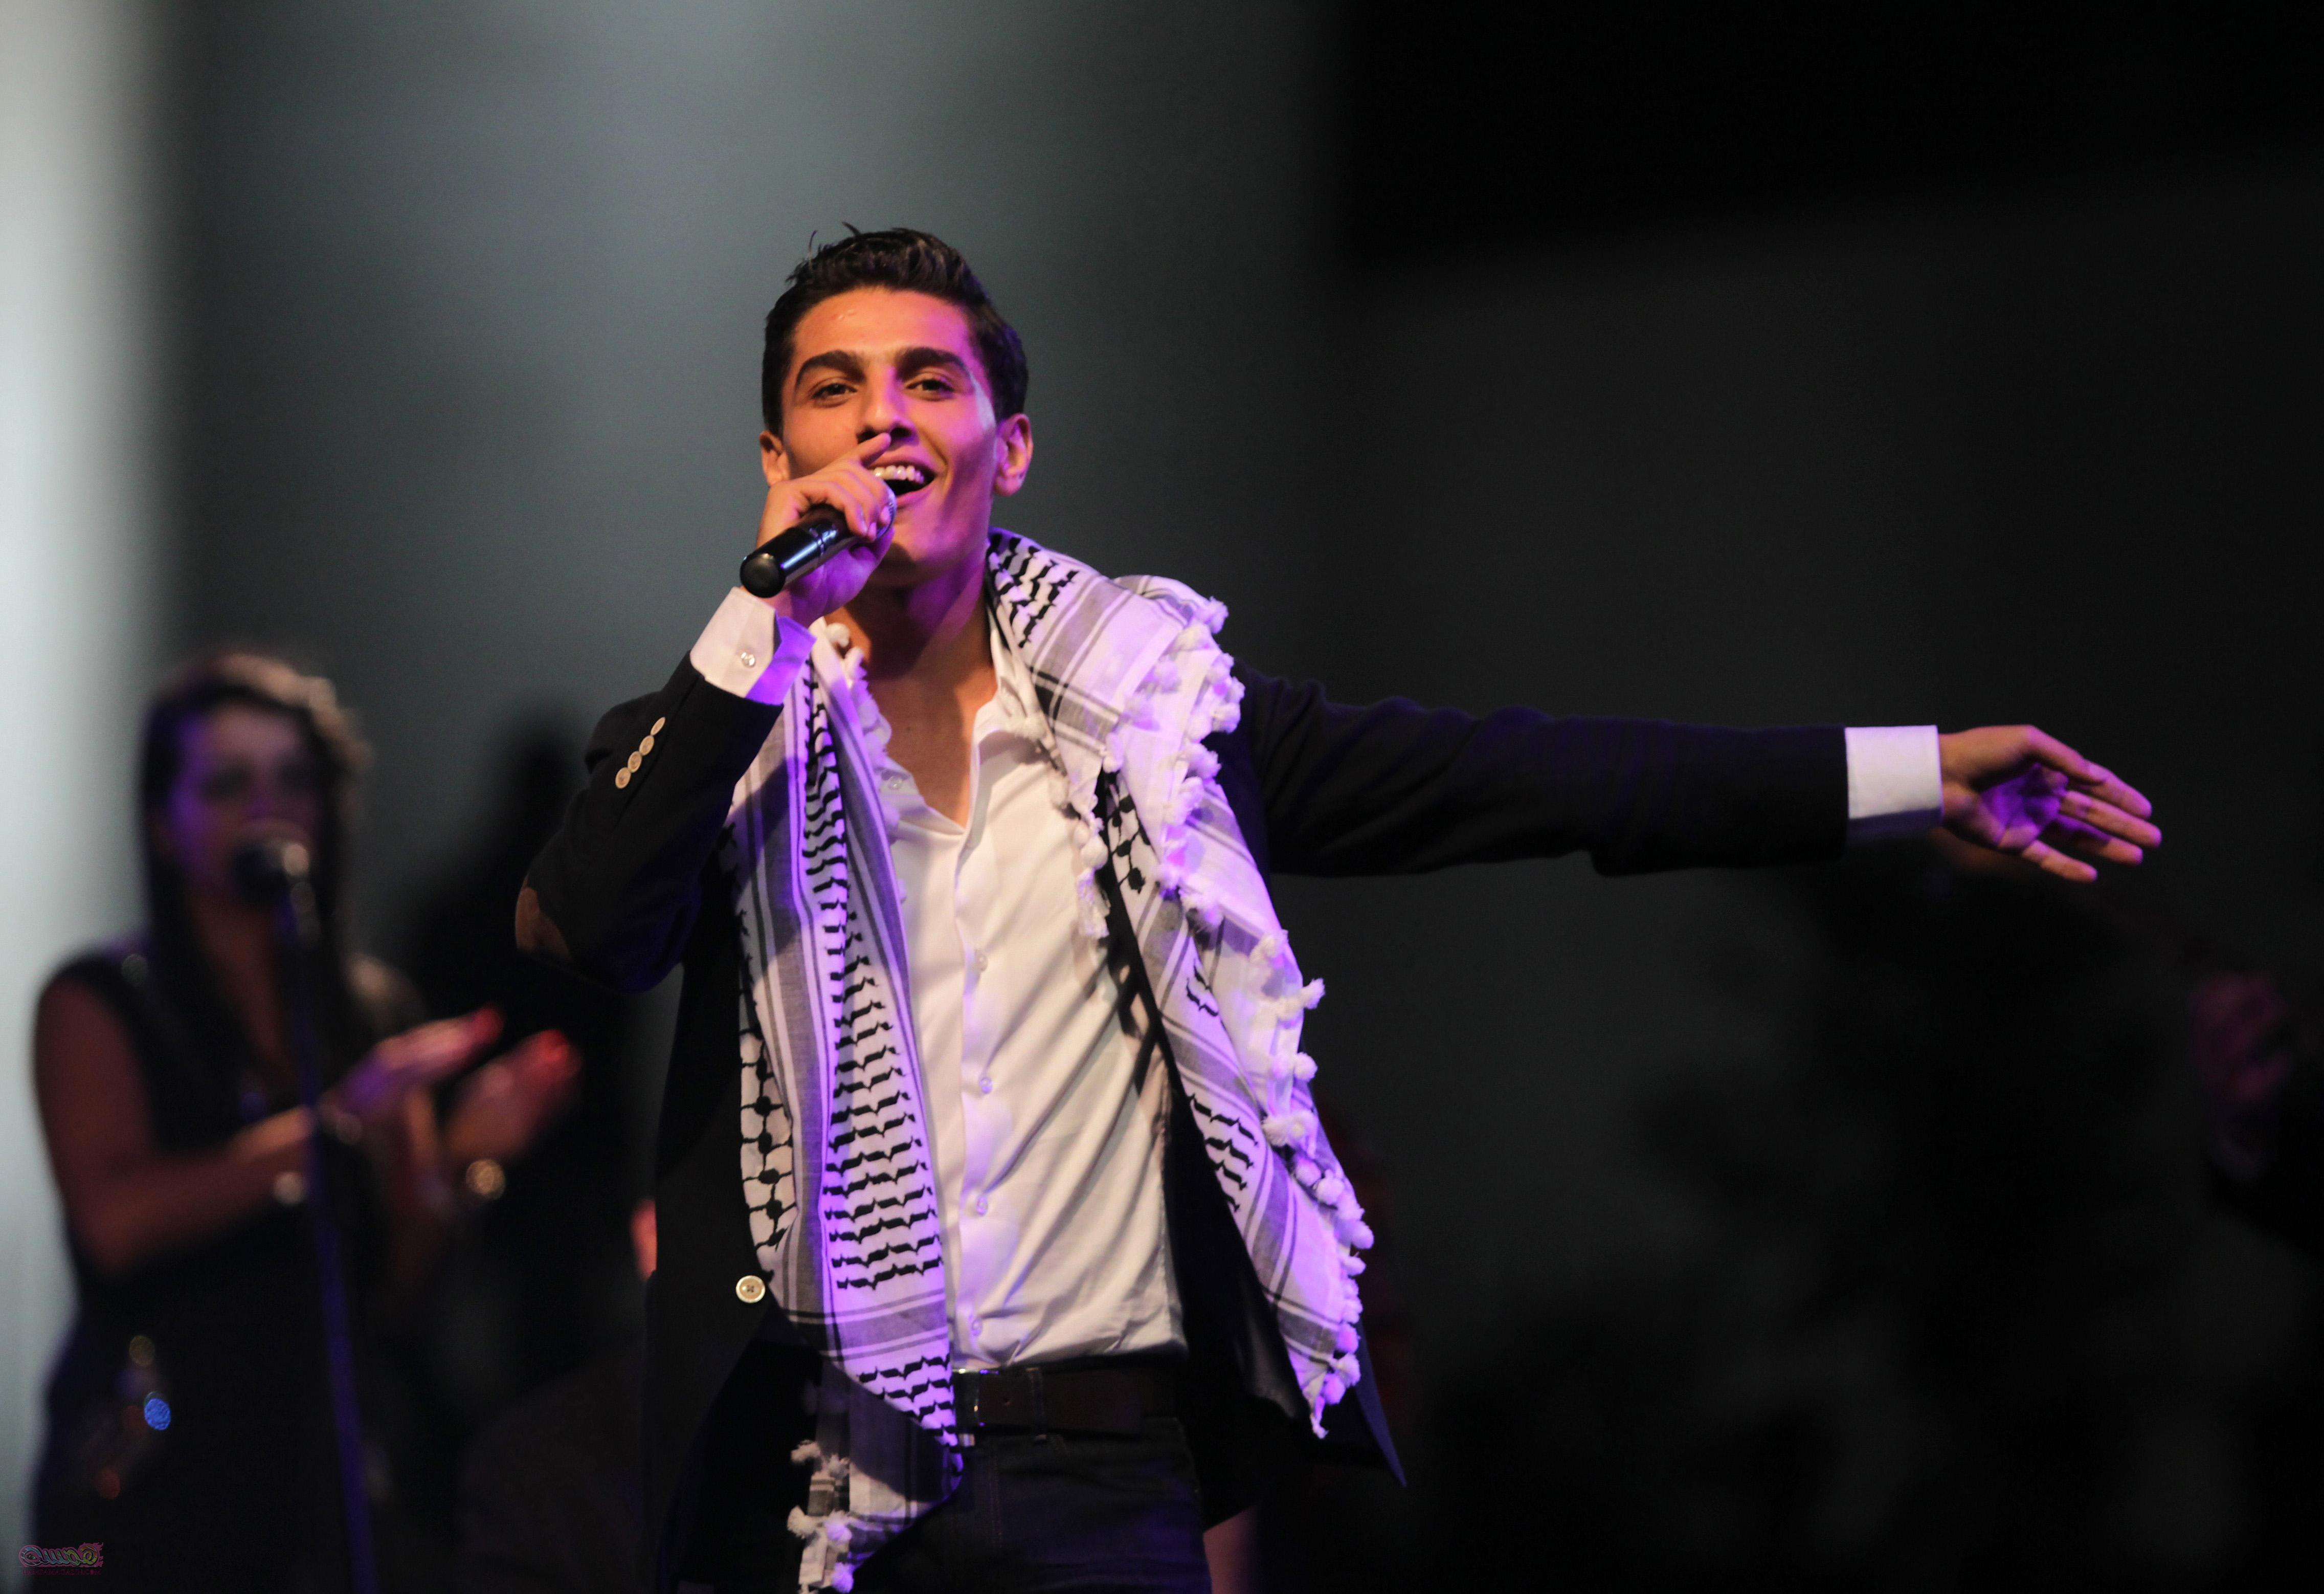 "Palestinian winner of ""Arab Idol"" Mohammed Assaf  performs in the West Bank city of Ramallah  on July 1, 2013. Mohammed Assaf, 22, the Gaza singer who won the prestigious Arab Idol talent contest, holds the celebration concert in Ramallah as part of a three-day West Bank tour. AFP PHOTO/ABBAS MOMANI        (Photo credit should read ABBAS MOMANI/AFP/Getty Images)"